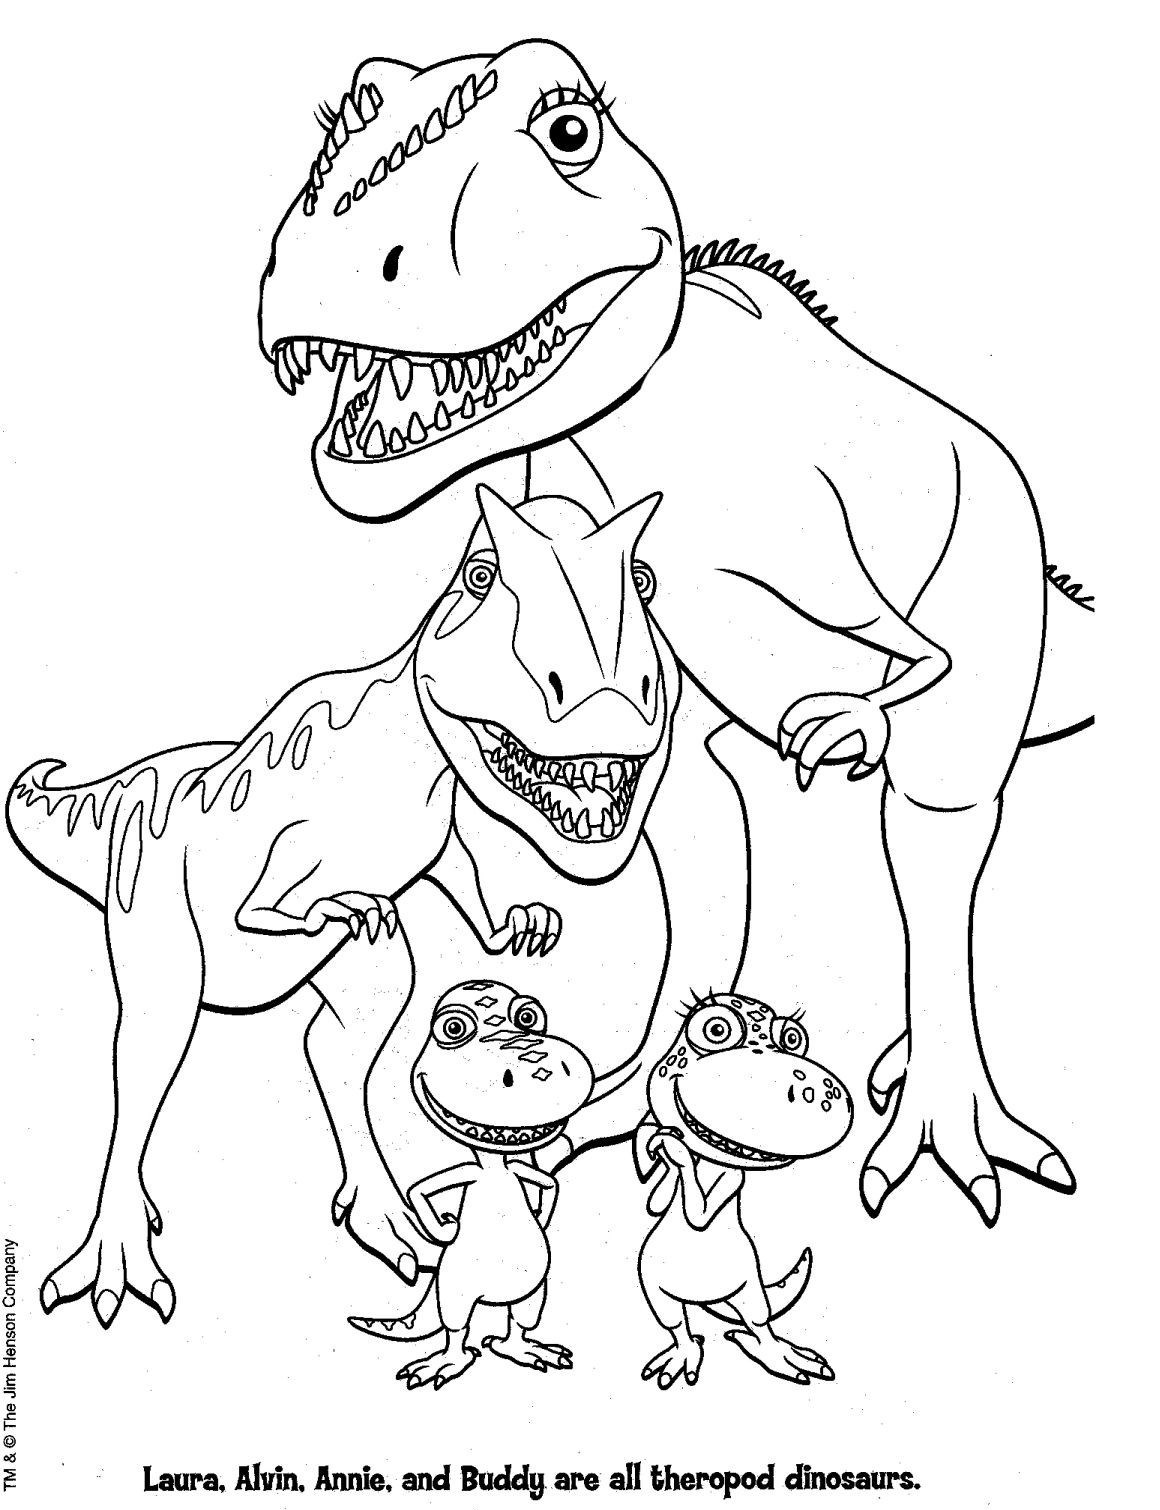 Dinosaur Coloring Pages To Print Animal Cute Printable Free King